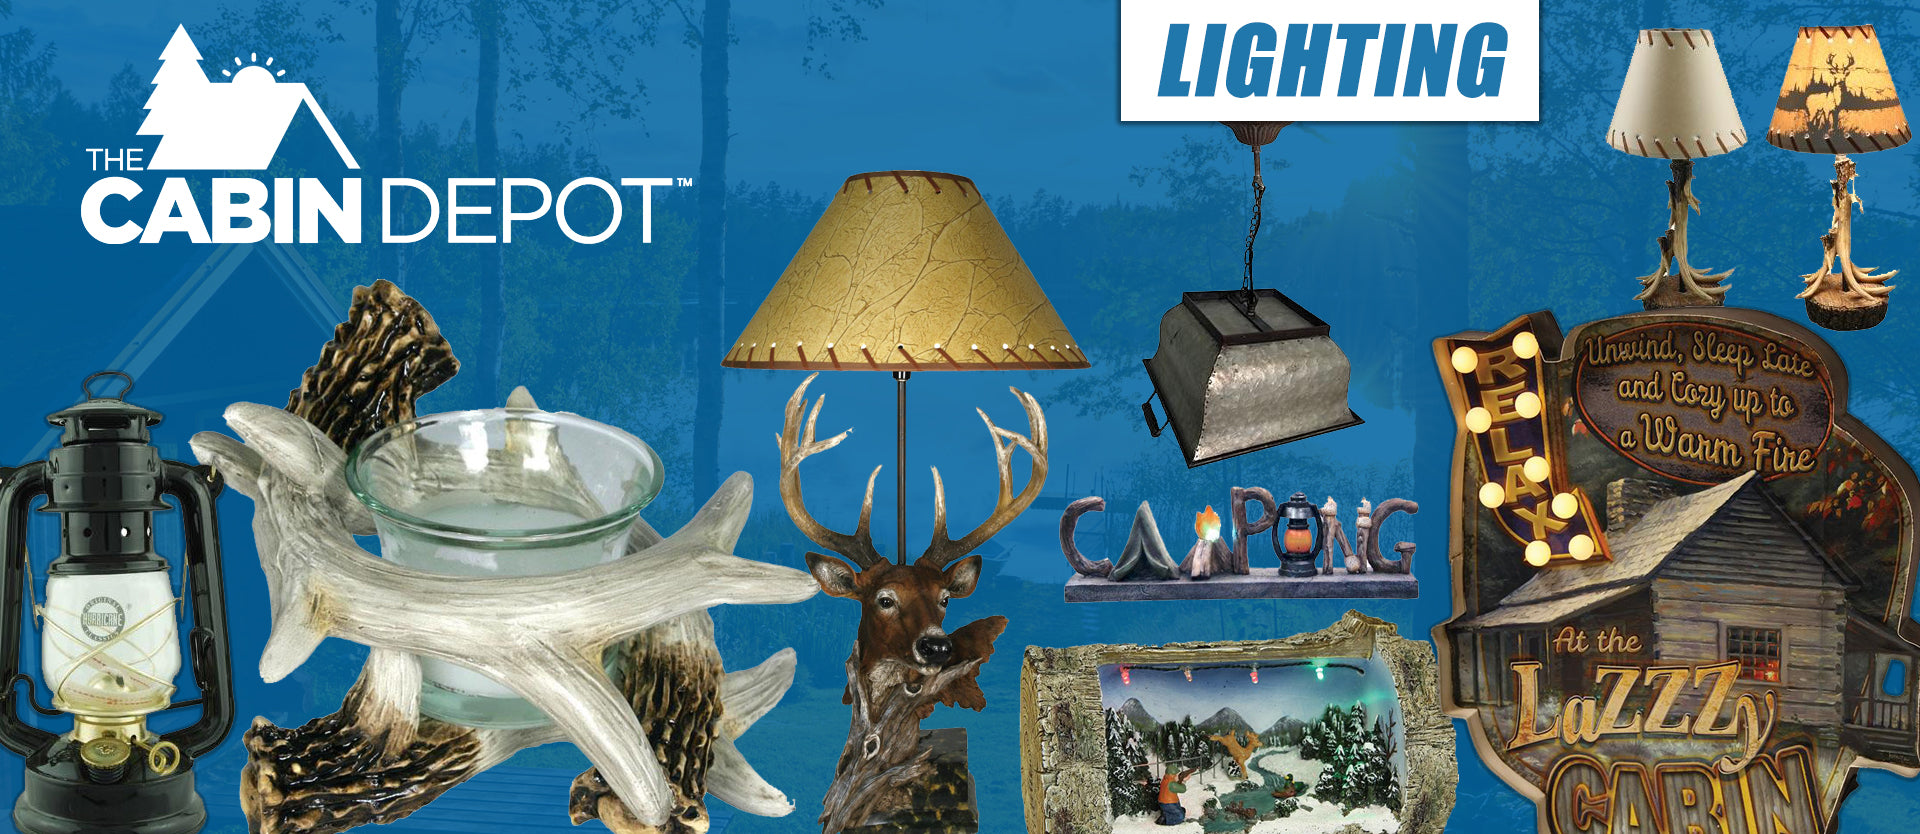 Lighting Decor Cabin Off Grid The Cabin Depot ™ Canada